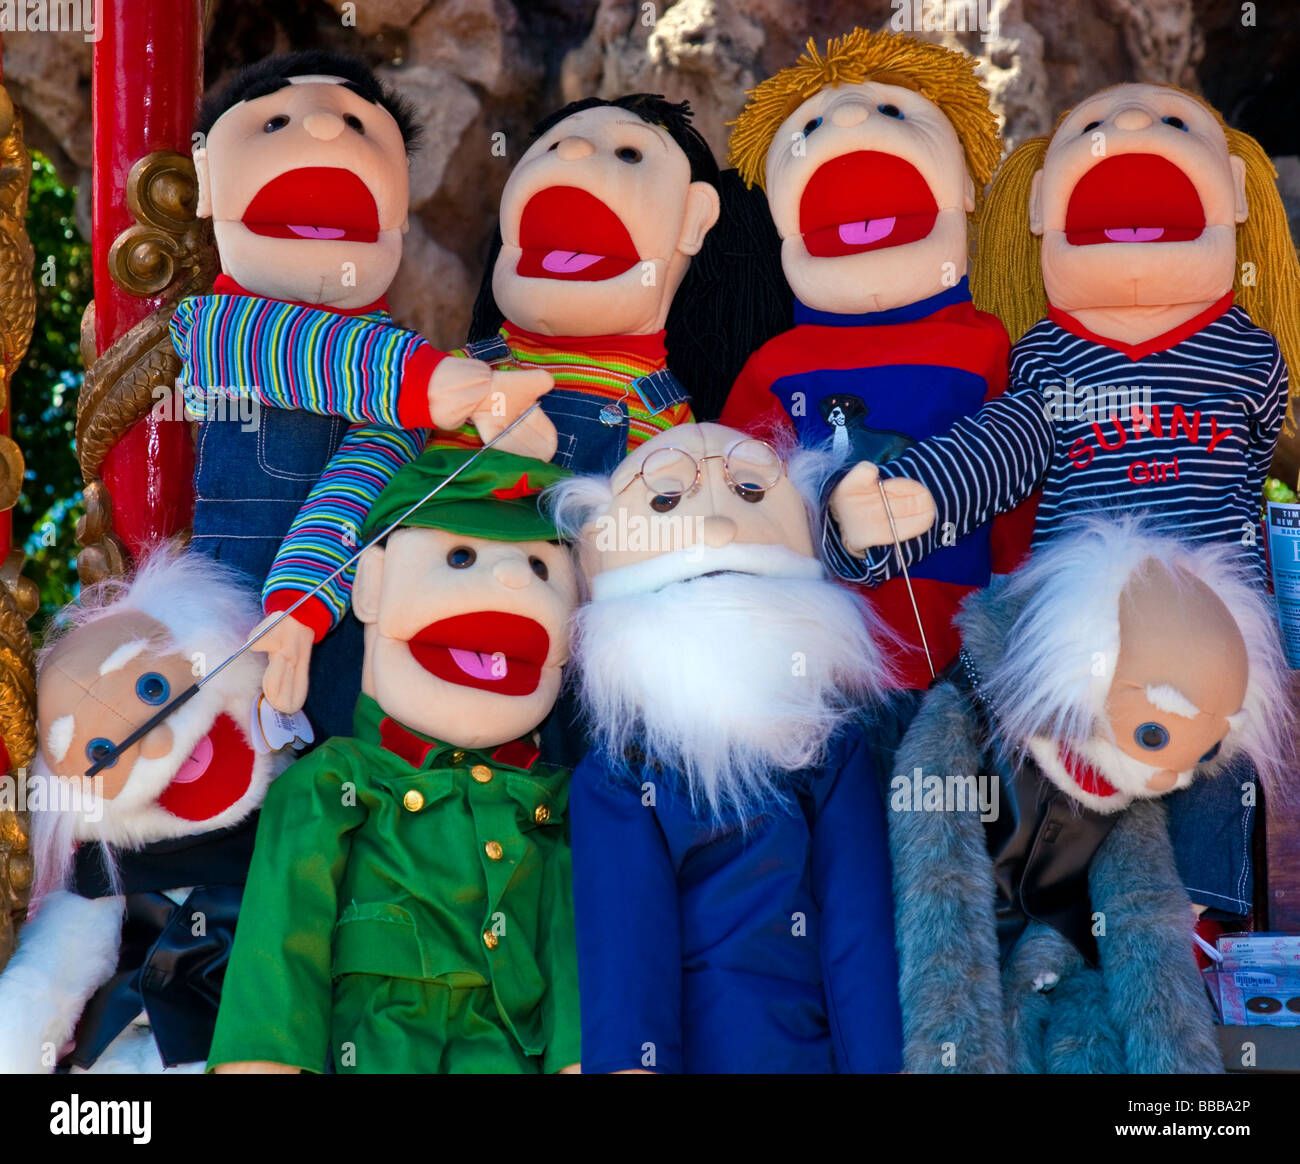 Mexico puppets for sale at Mexican flee market - Stock Image